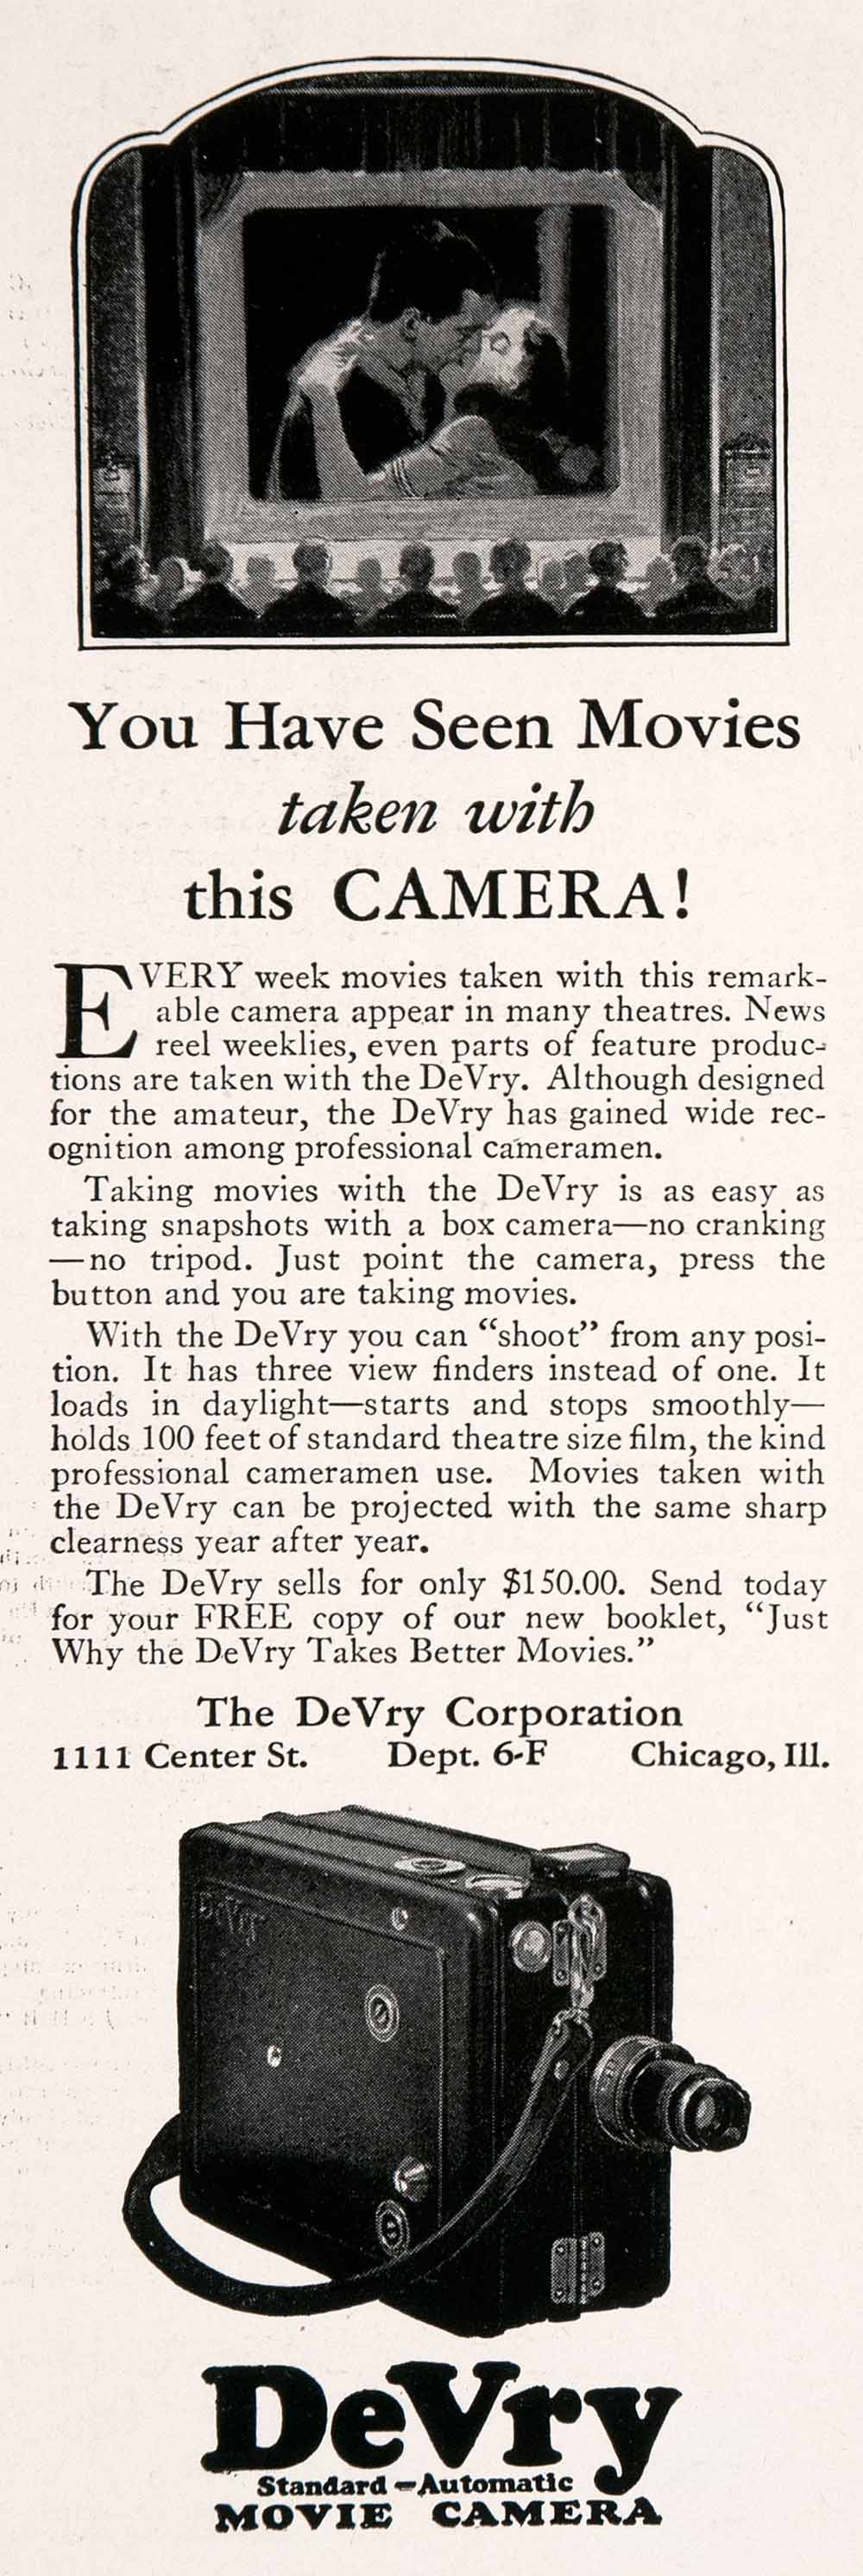 1927 Ad Antique DeVry Standard Automatic Movie Camera Camcorder Pricing NGM3